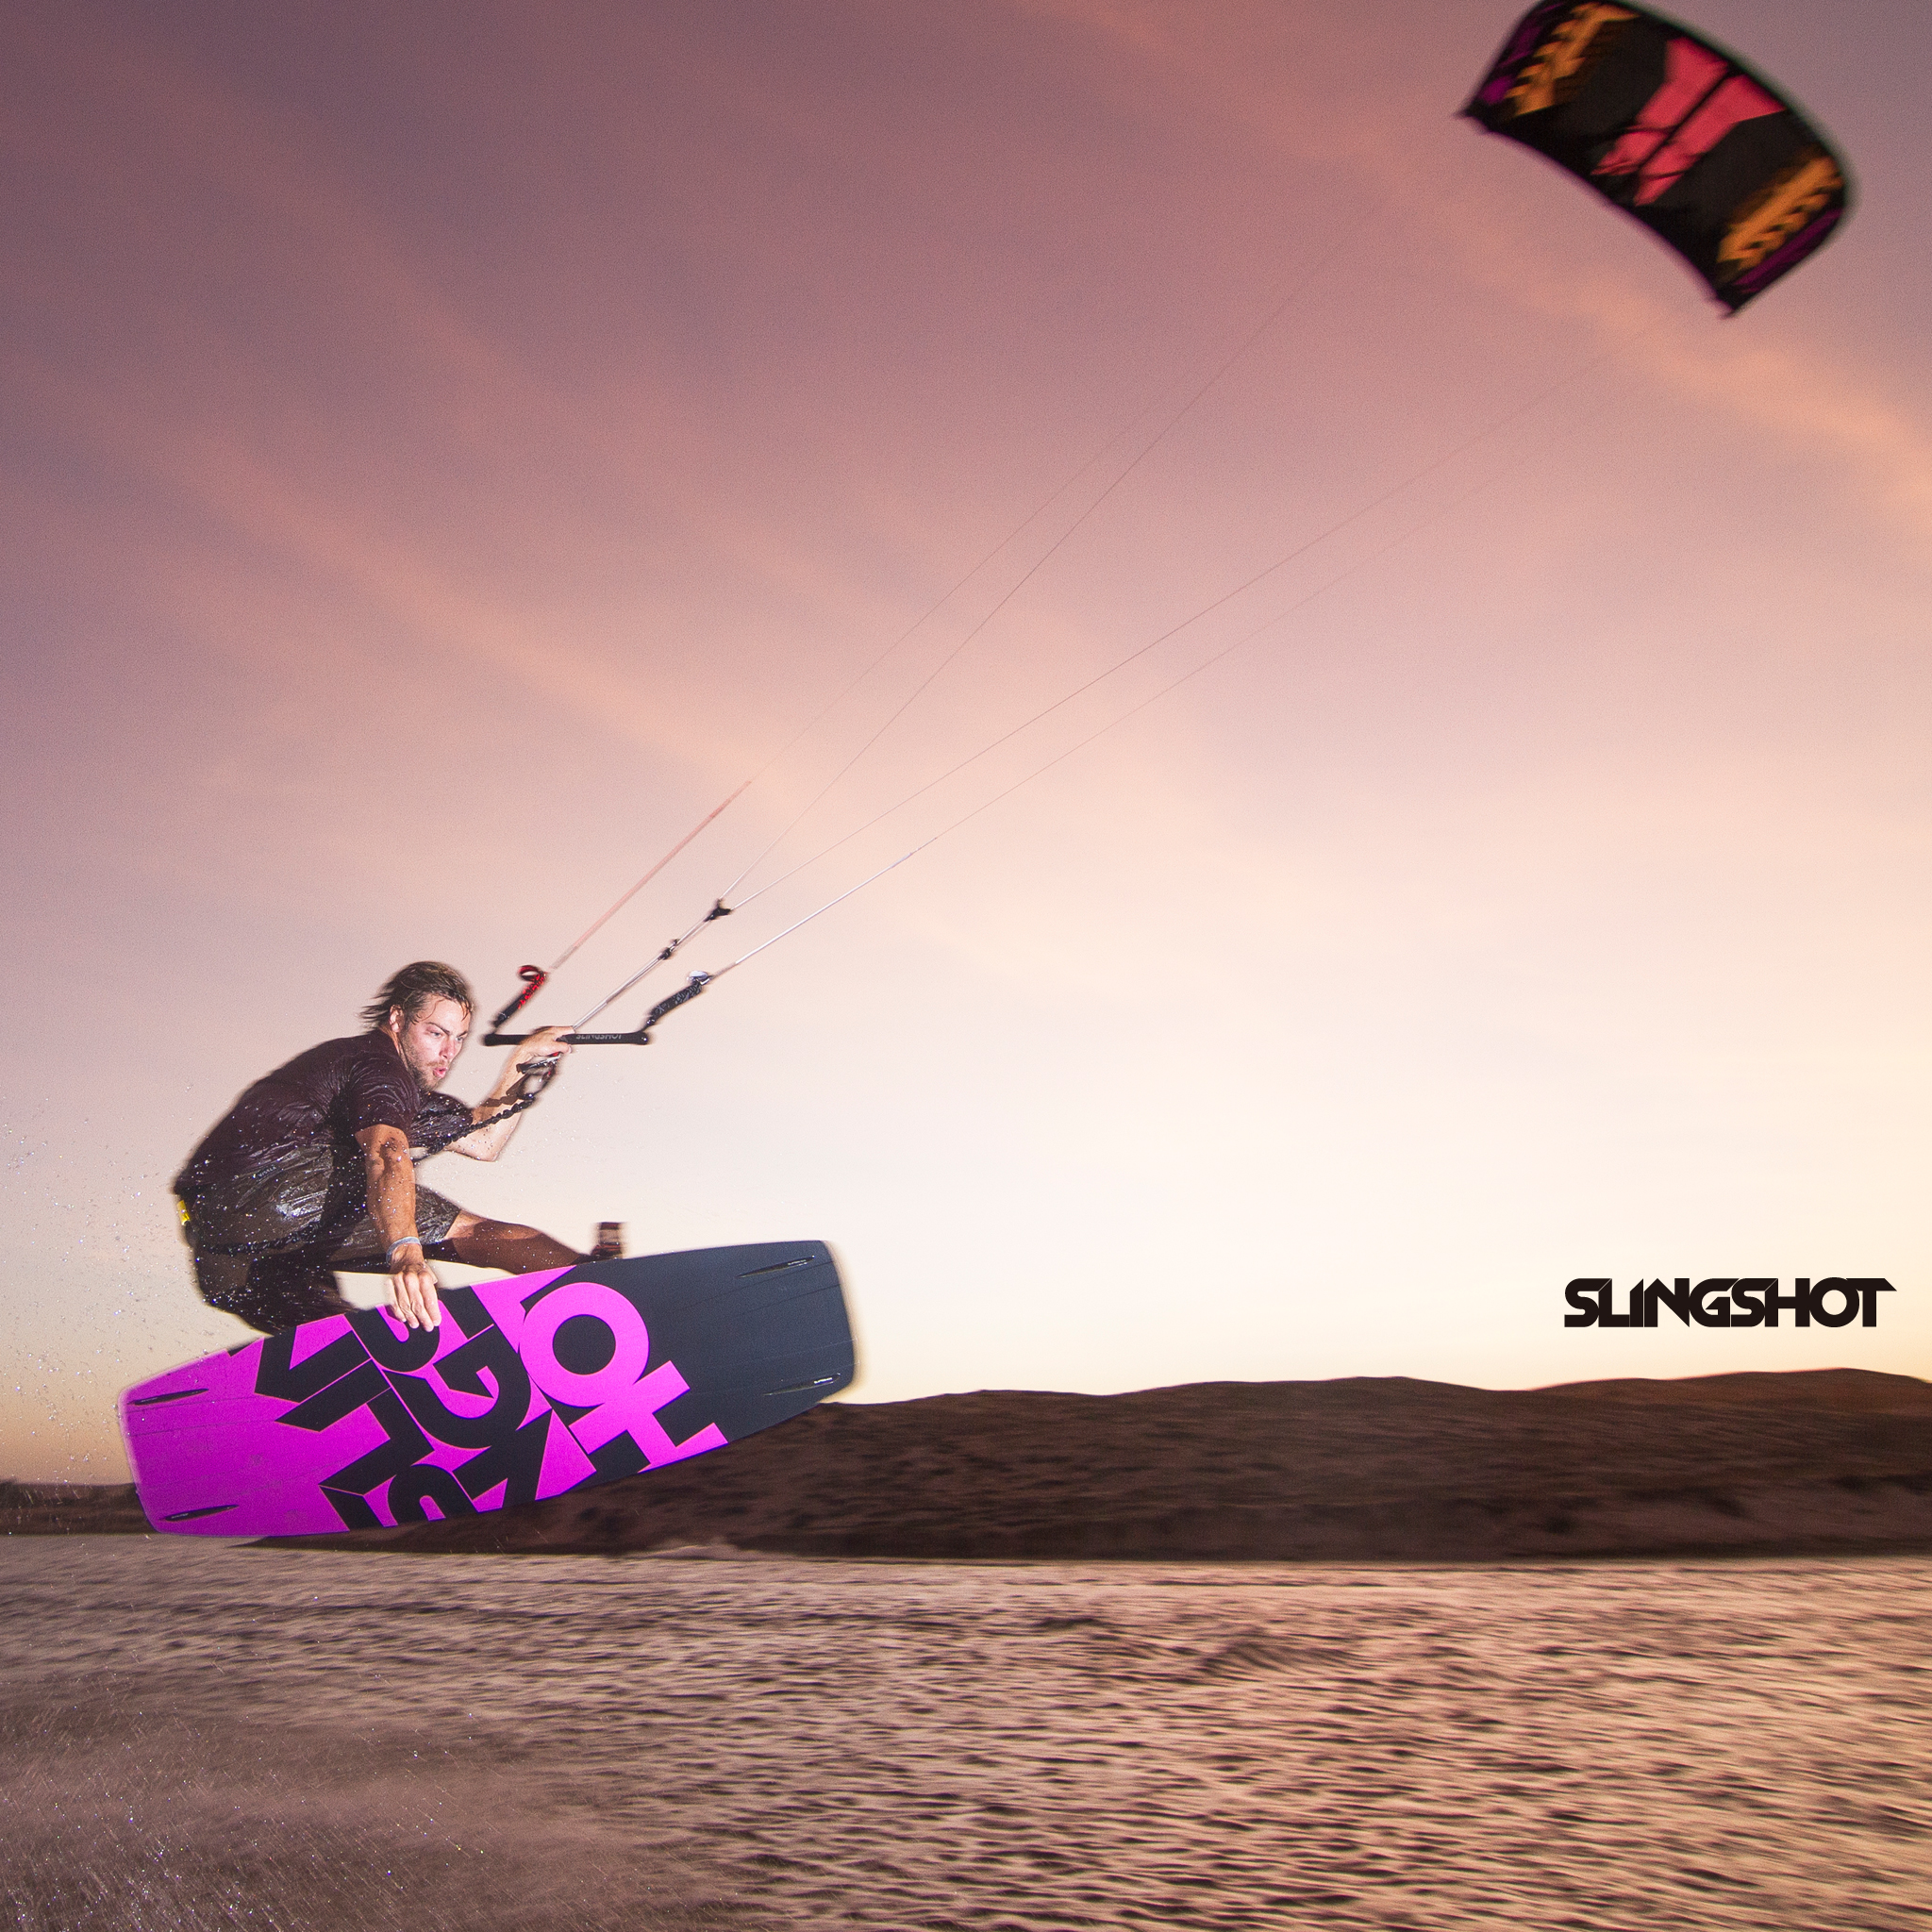 kitesurf wallpaper image - Grabbing some rail on the 2015 Slingshot Asylum board and flying the RPM kite. - in resolution: iPad 2 & 3 2048 X 2048